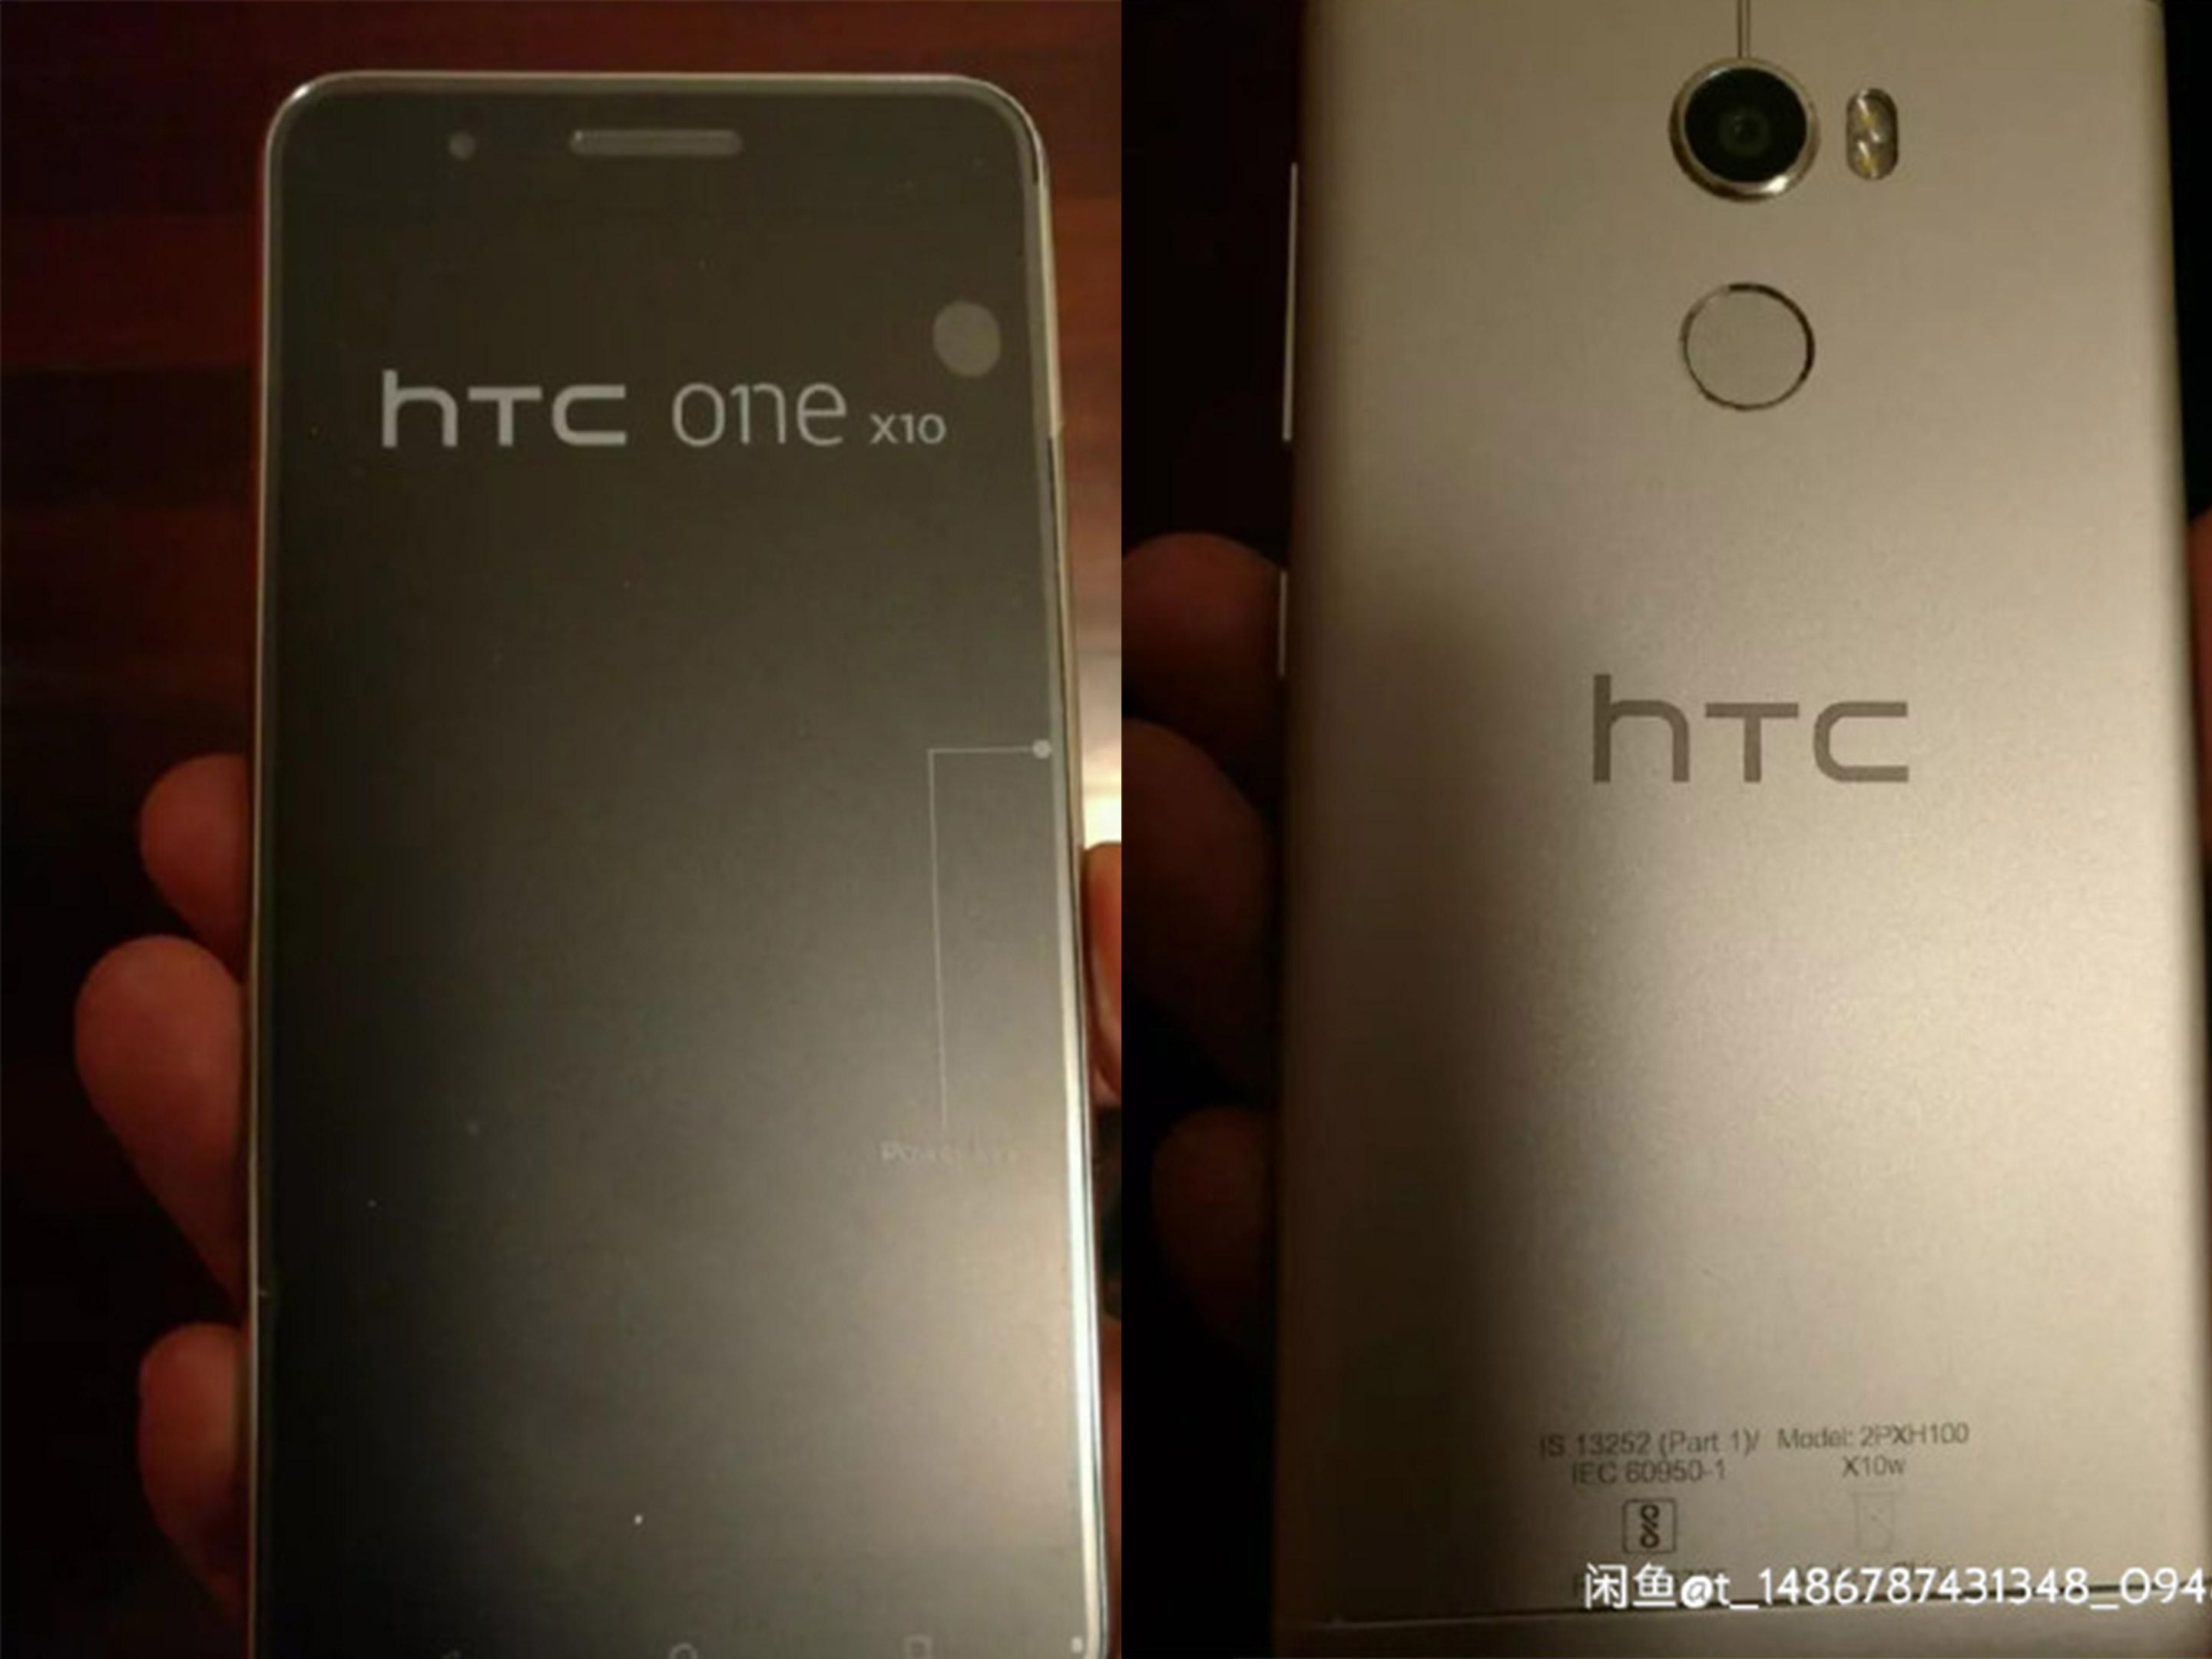 htc one x10 front and back